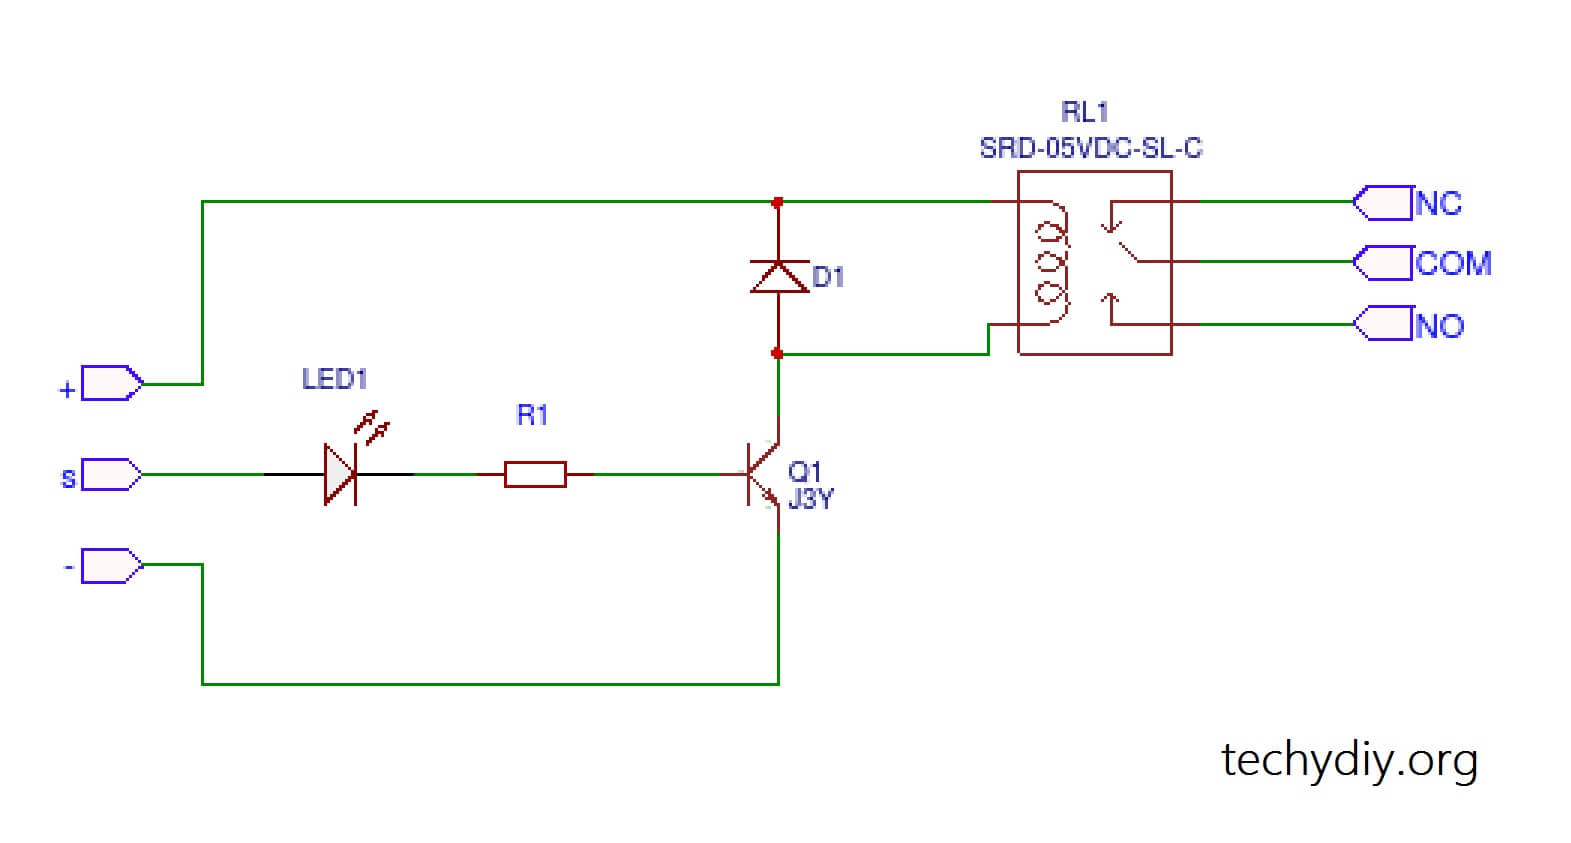 Keyes-SR1y circuit diagram